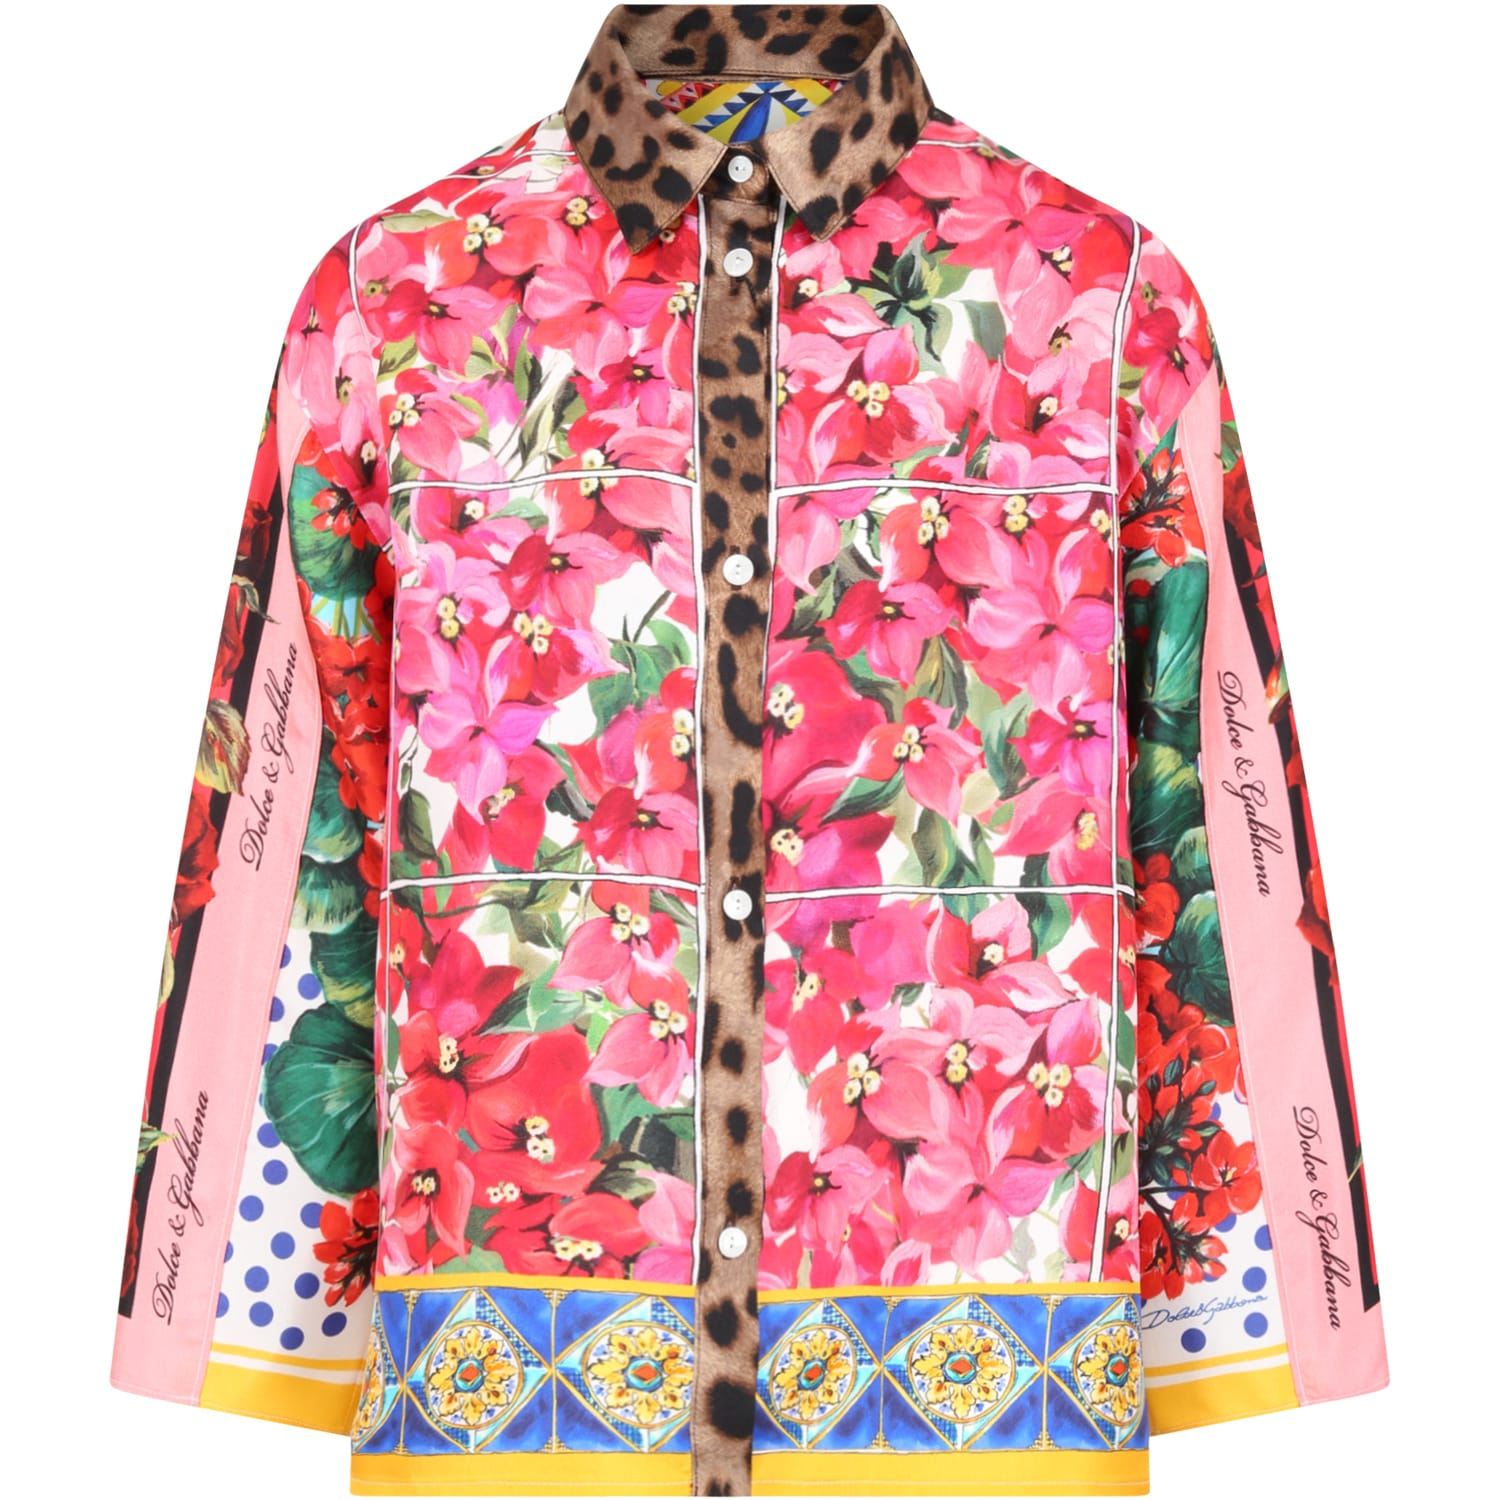 Dolce & Gabbana MULTICOLOR SHIRT FOR GIRL WITH LOGO